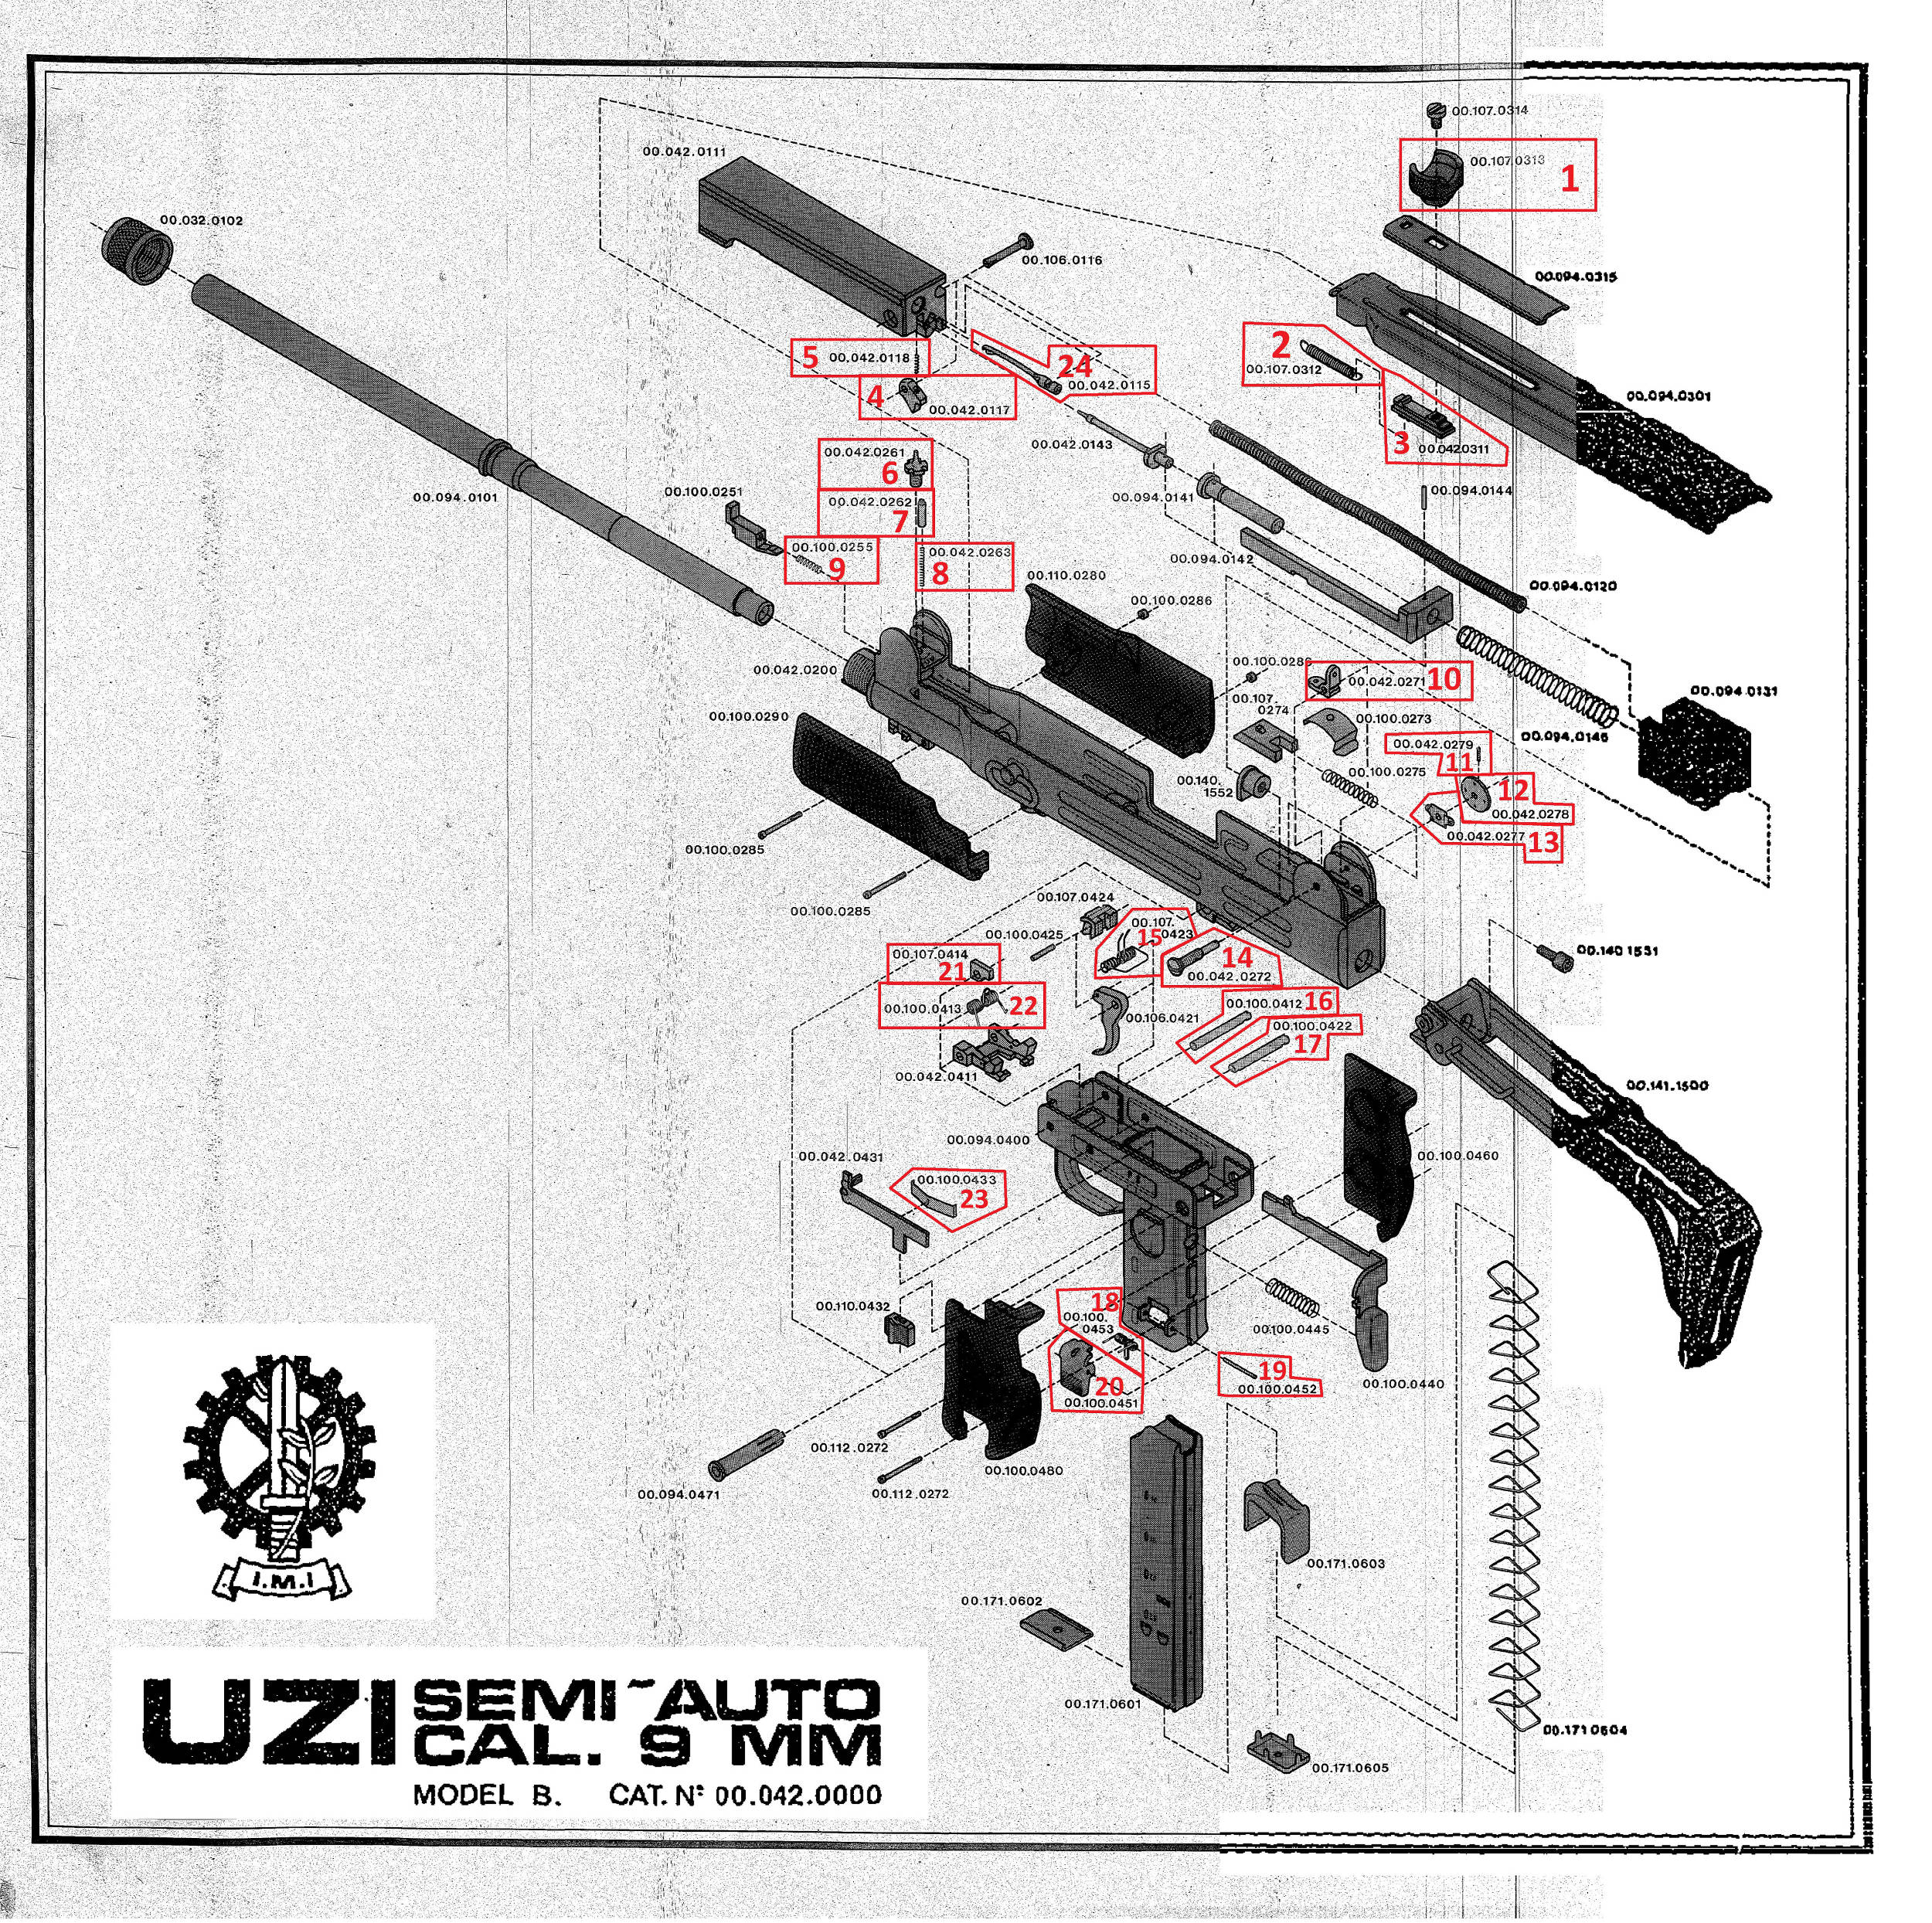 item #13 on the uzi® carbine model a exploded diagram